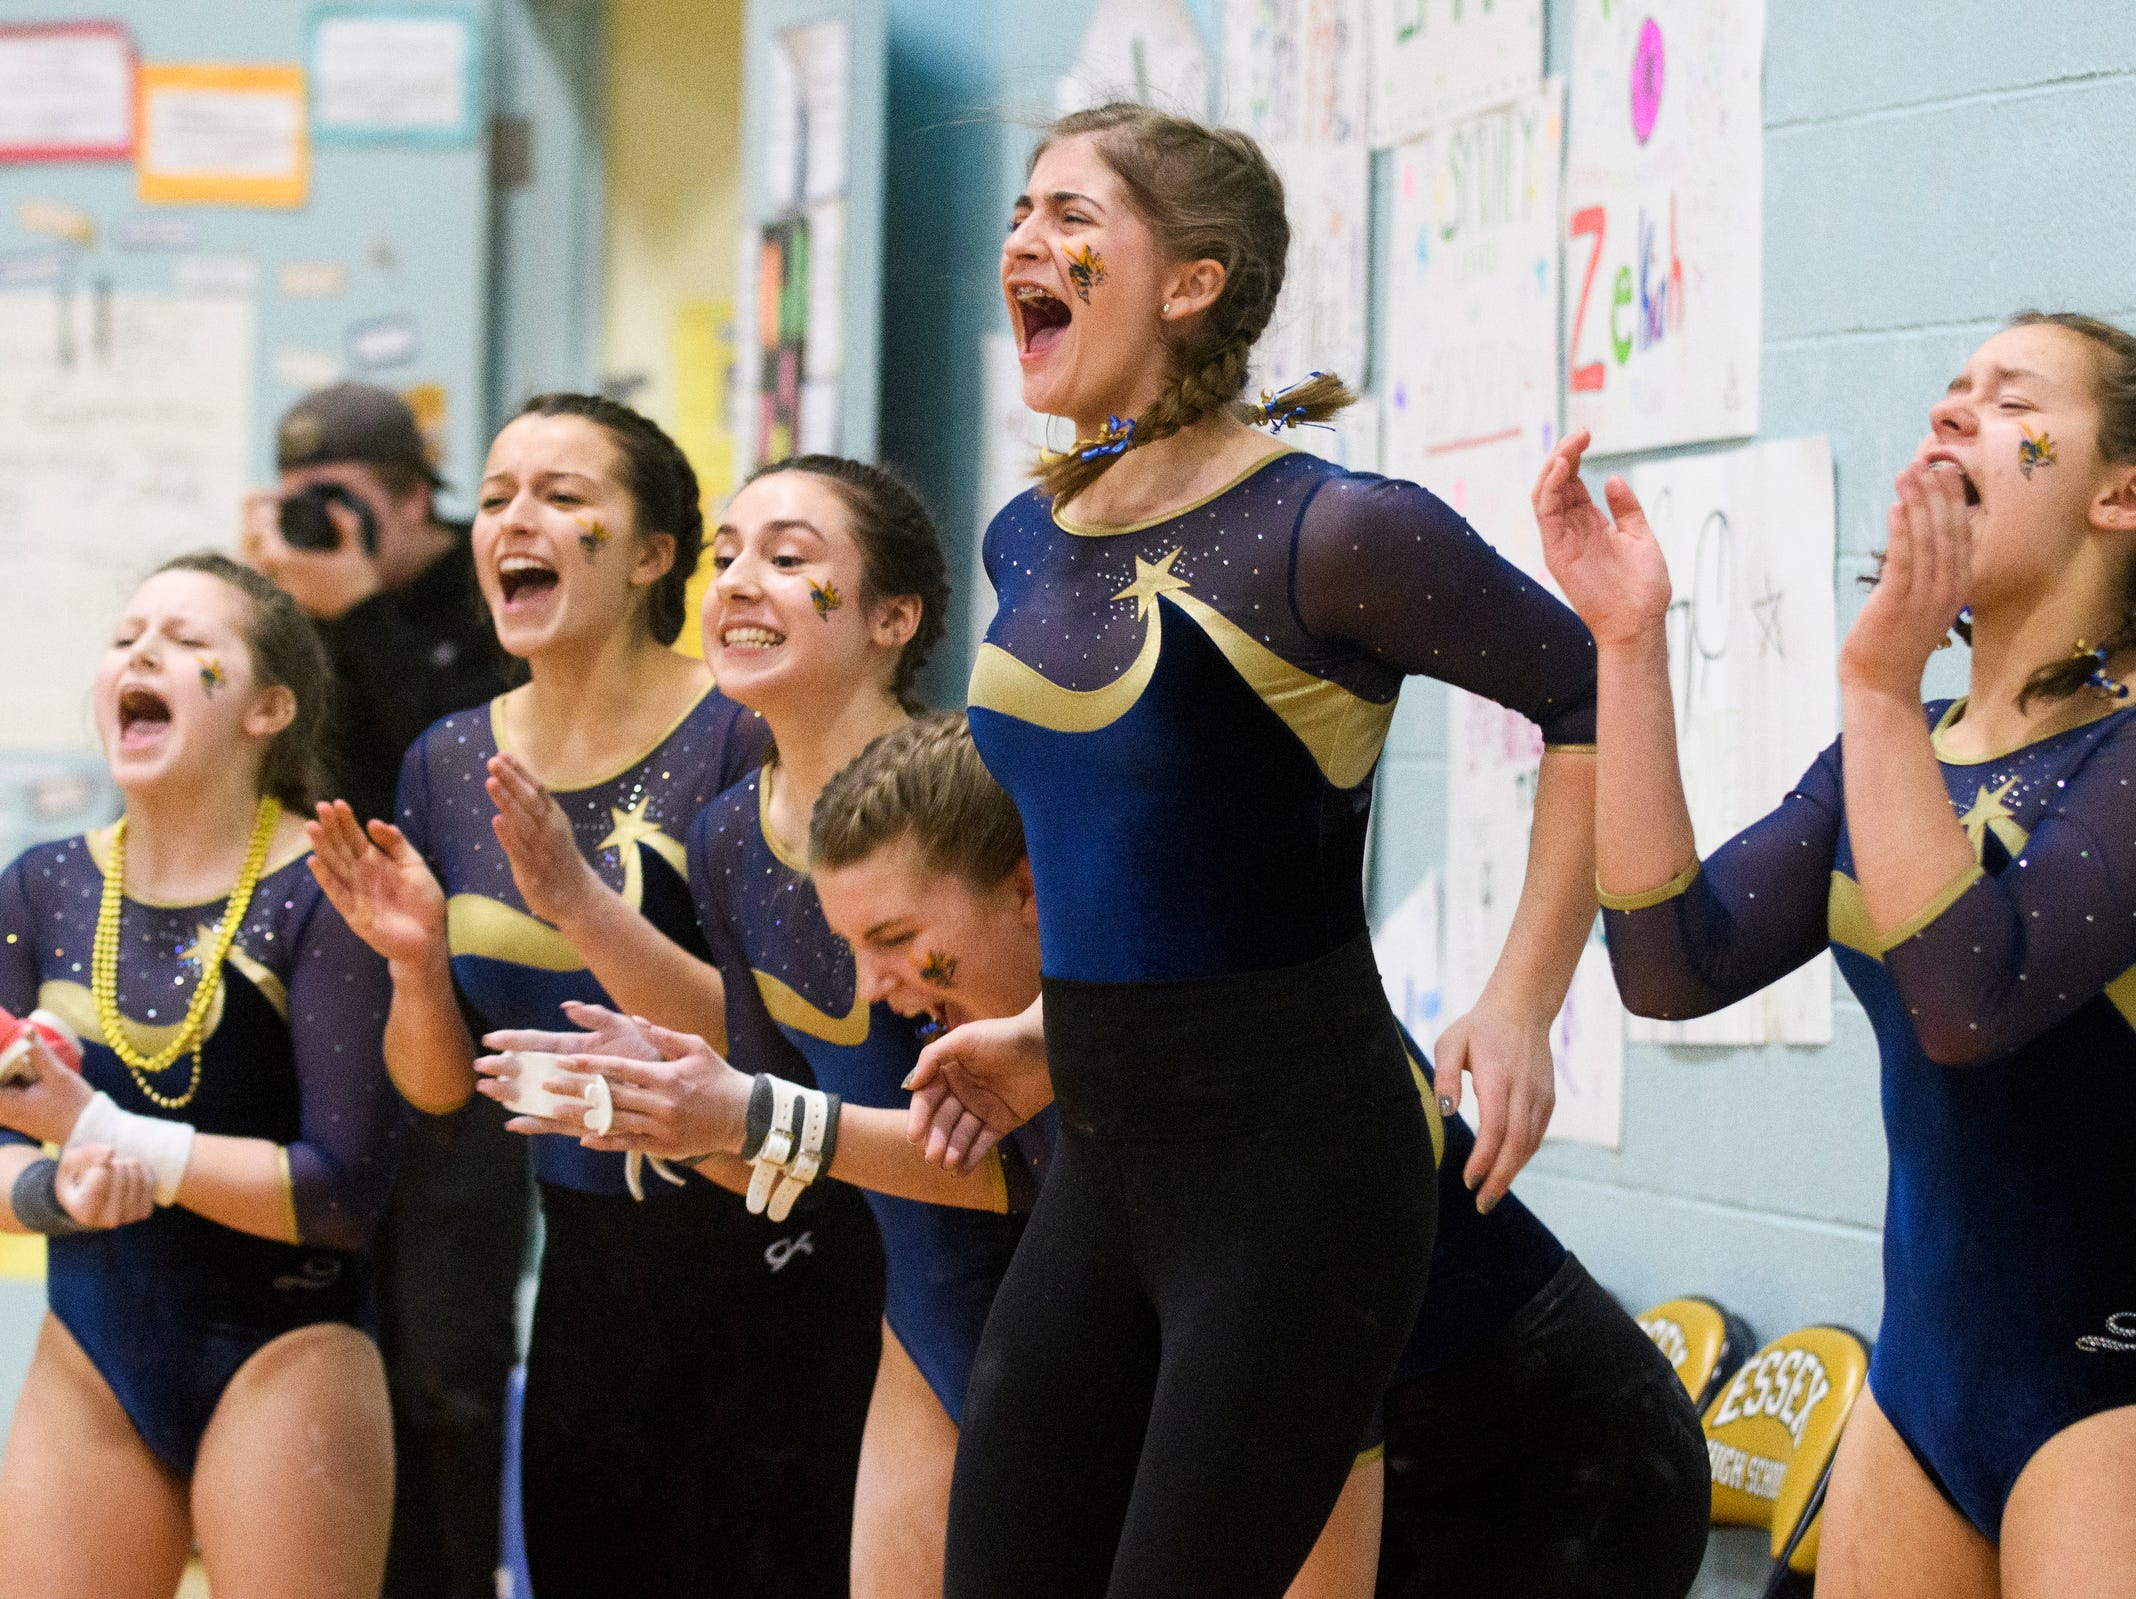 Essex cheers on their teammate during the 2019 high school gymnastics championship at Essex High School on Saturday afternoon February 16, 2019 in Essex, Vermont.